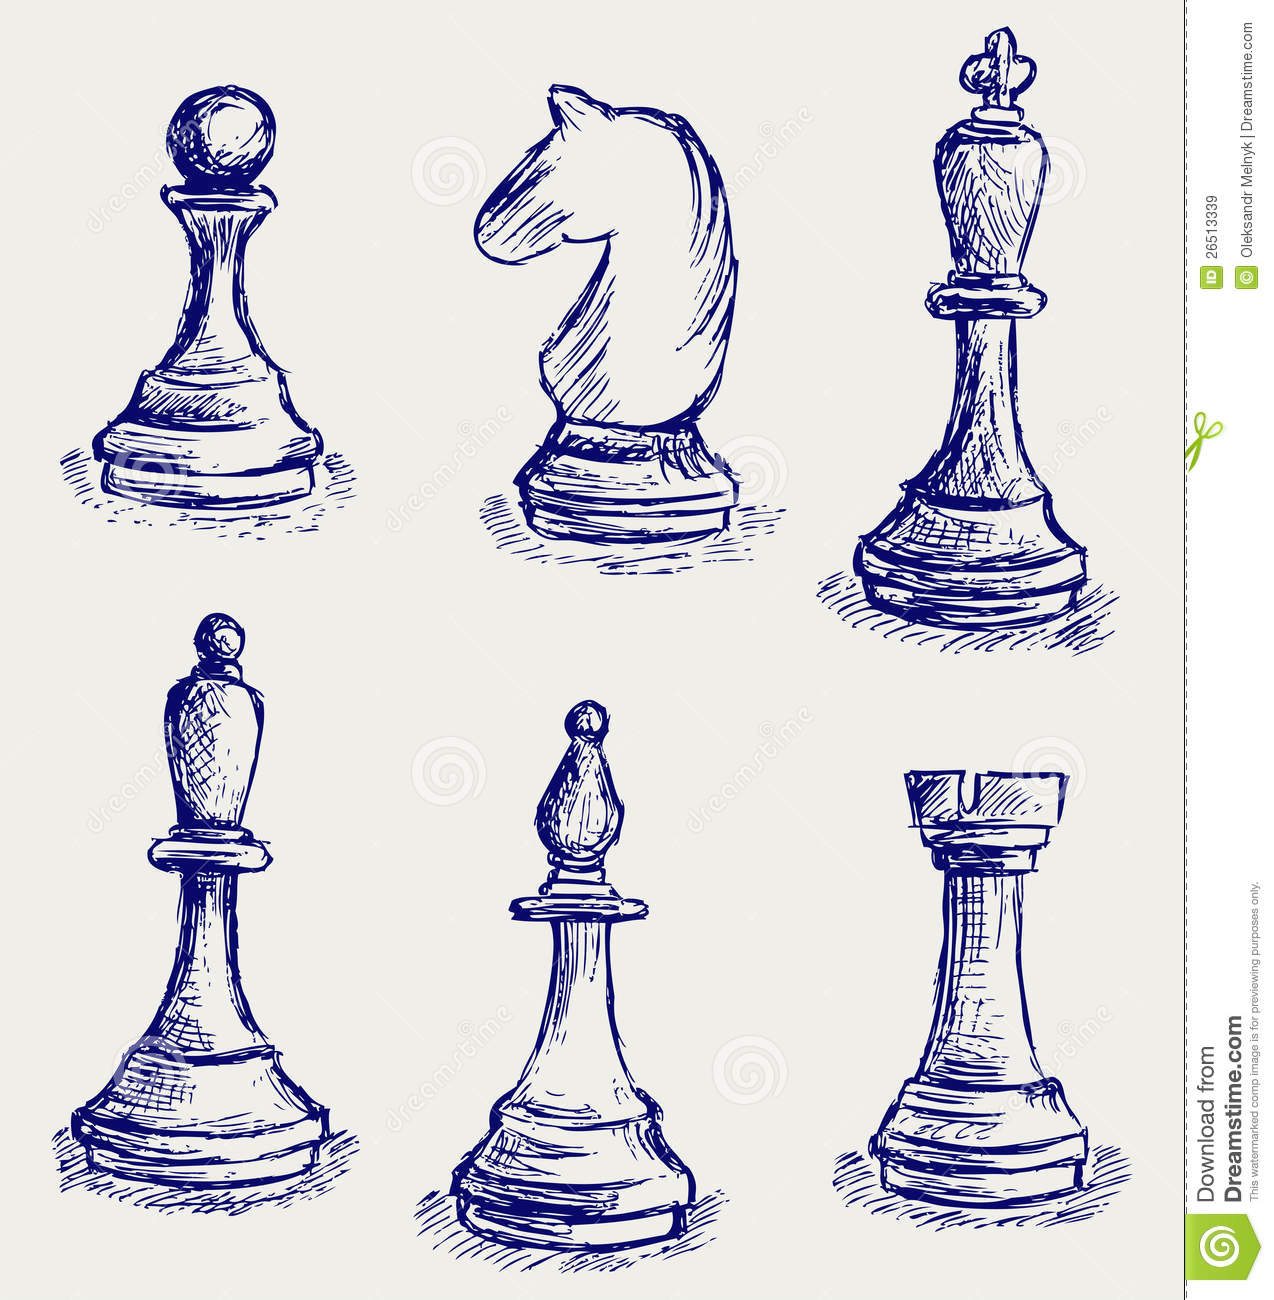 Chess Figures Royalty Free Stock Images - Image: 26513339